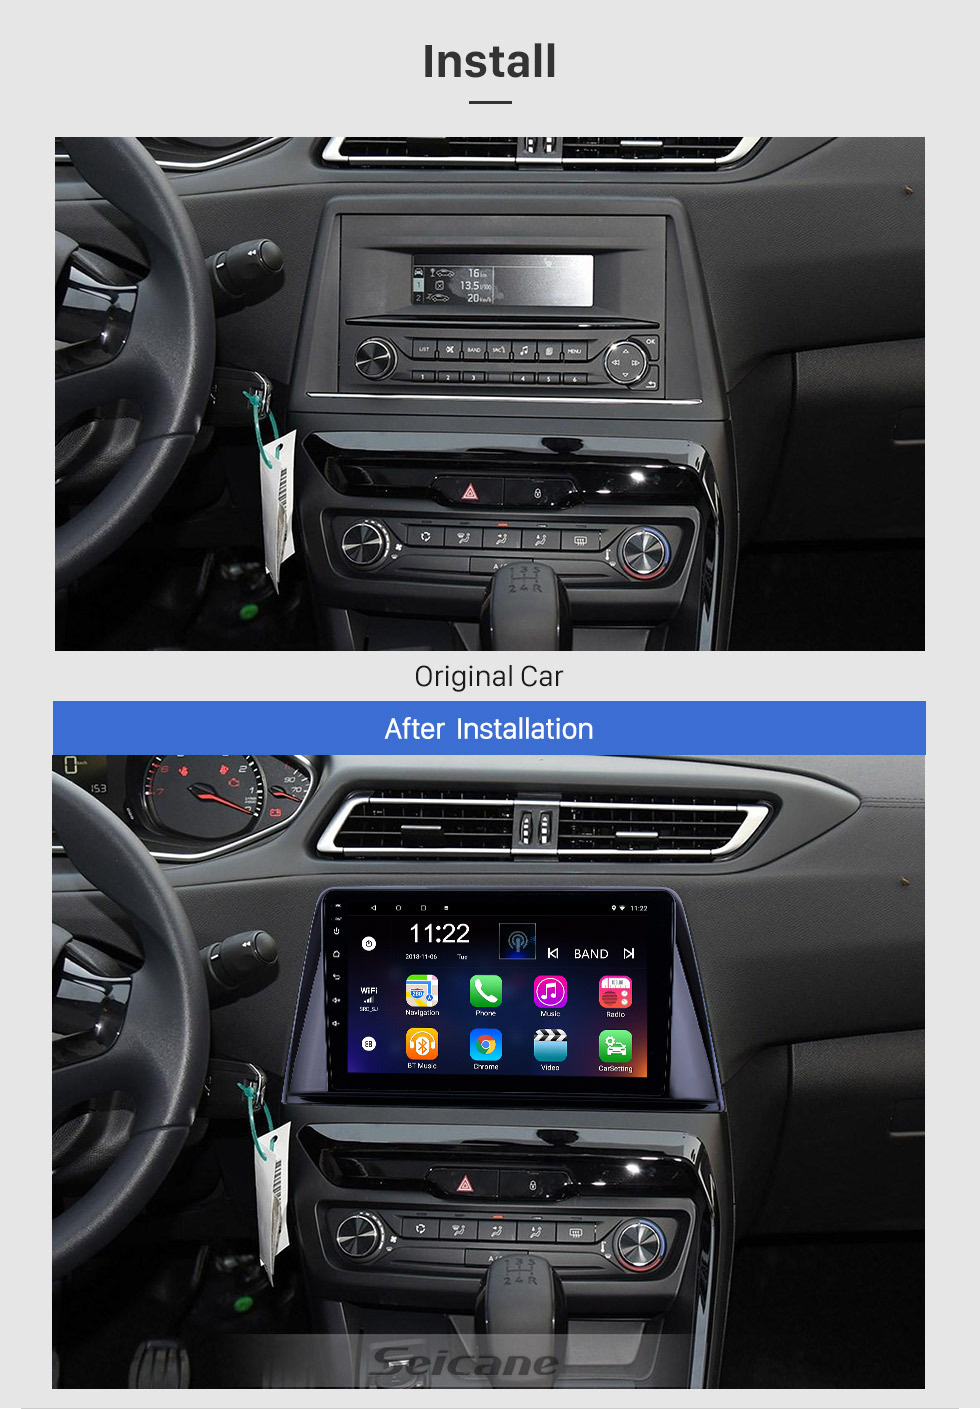 Seicane HD Touchscreen 9 inch Android 10.0 GPS Navigation Radio for 2016-2018 Peugeot 308 with Bluetooth AUX support Carplay Steering Wheel Control